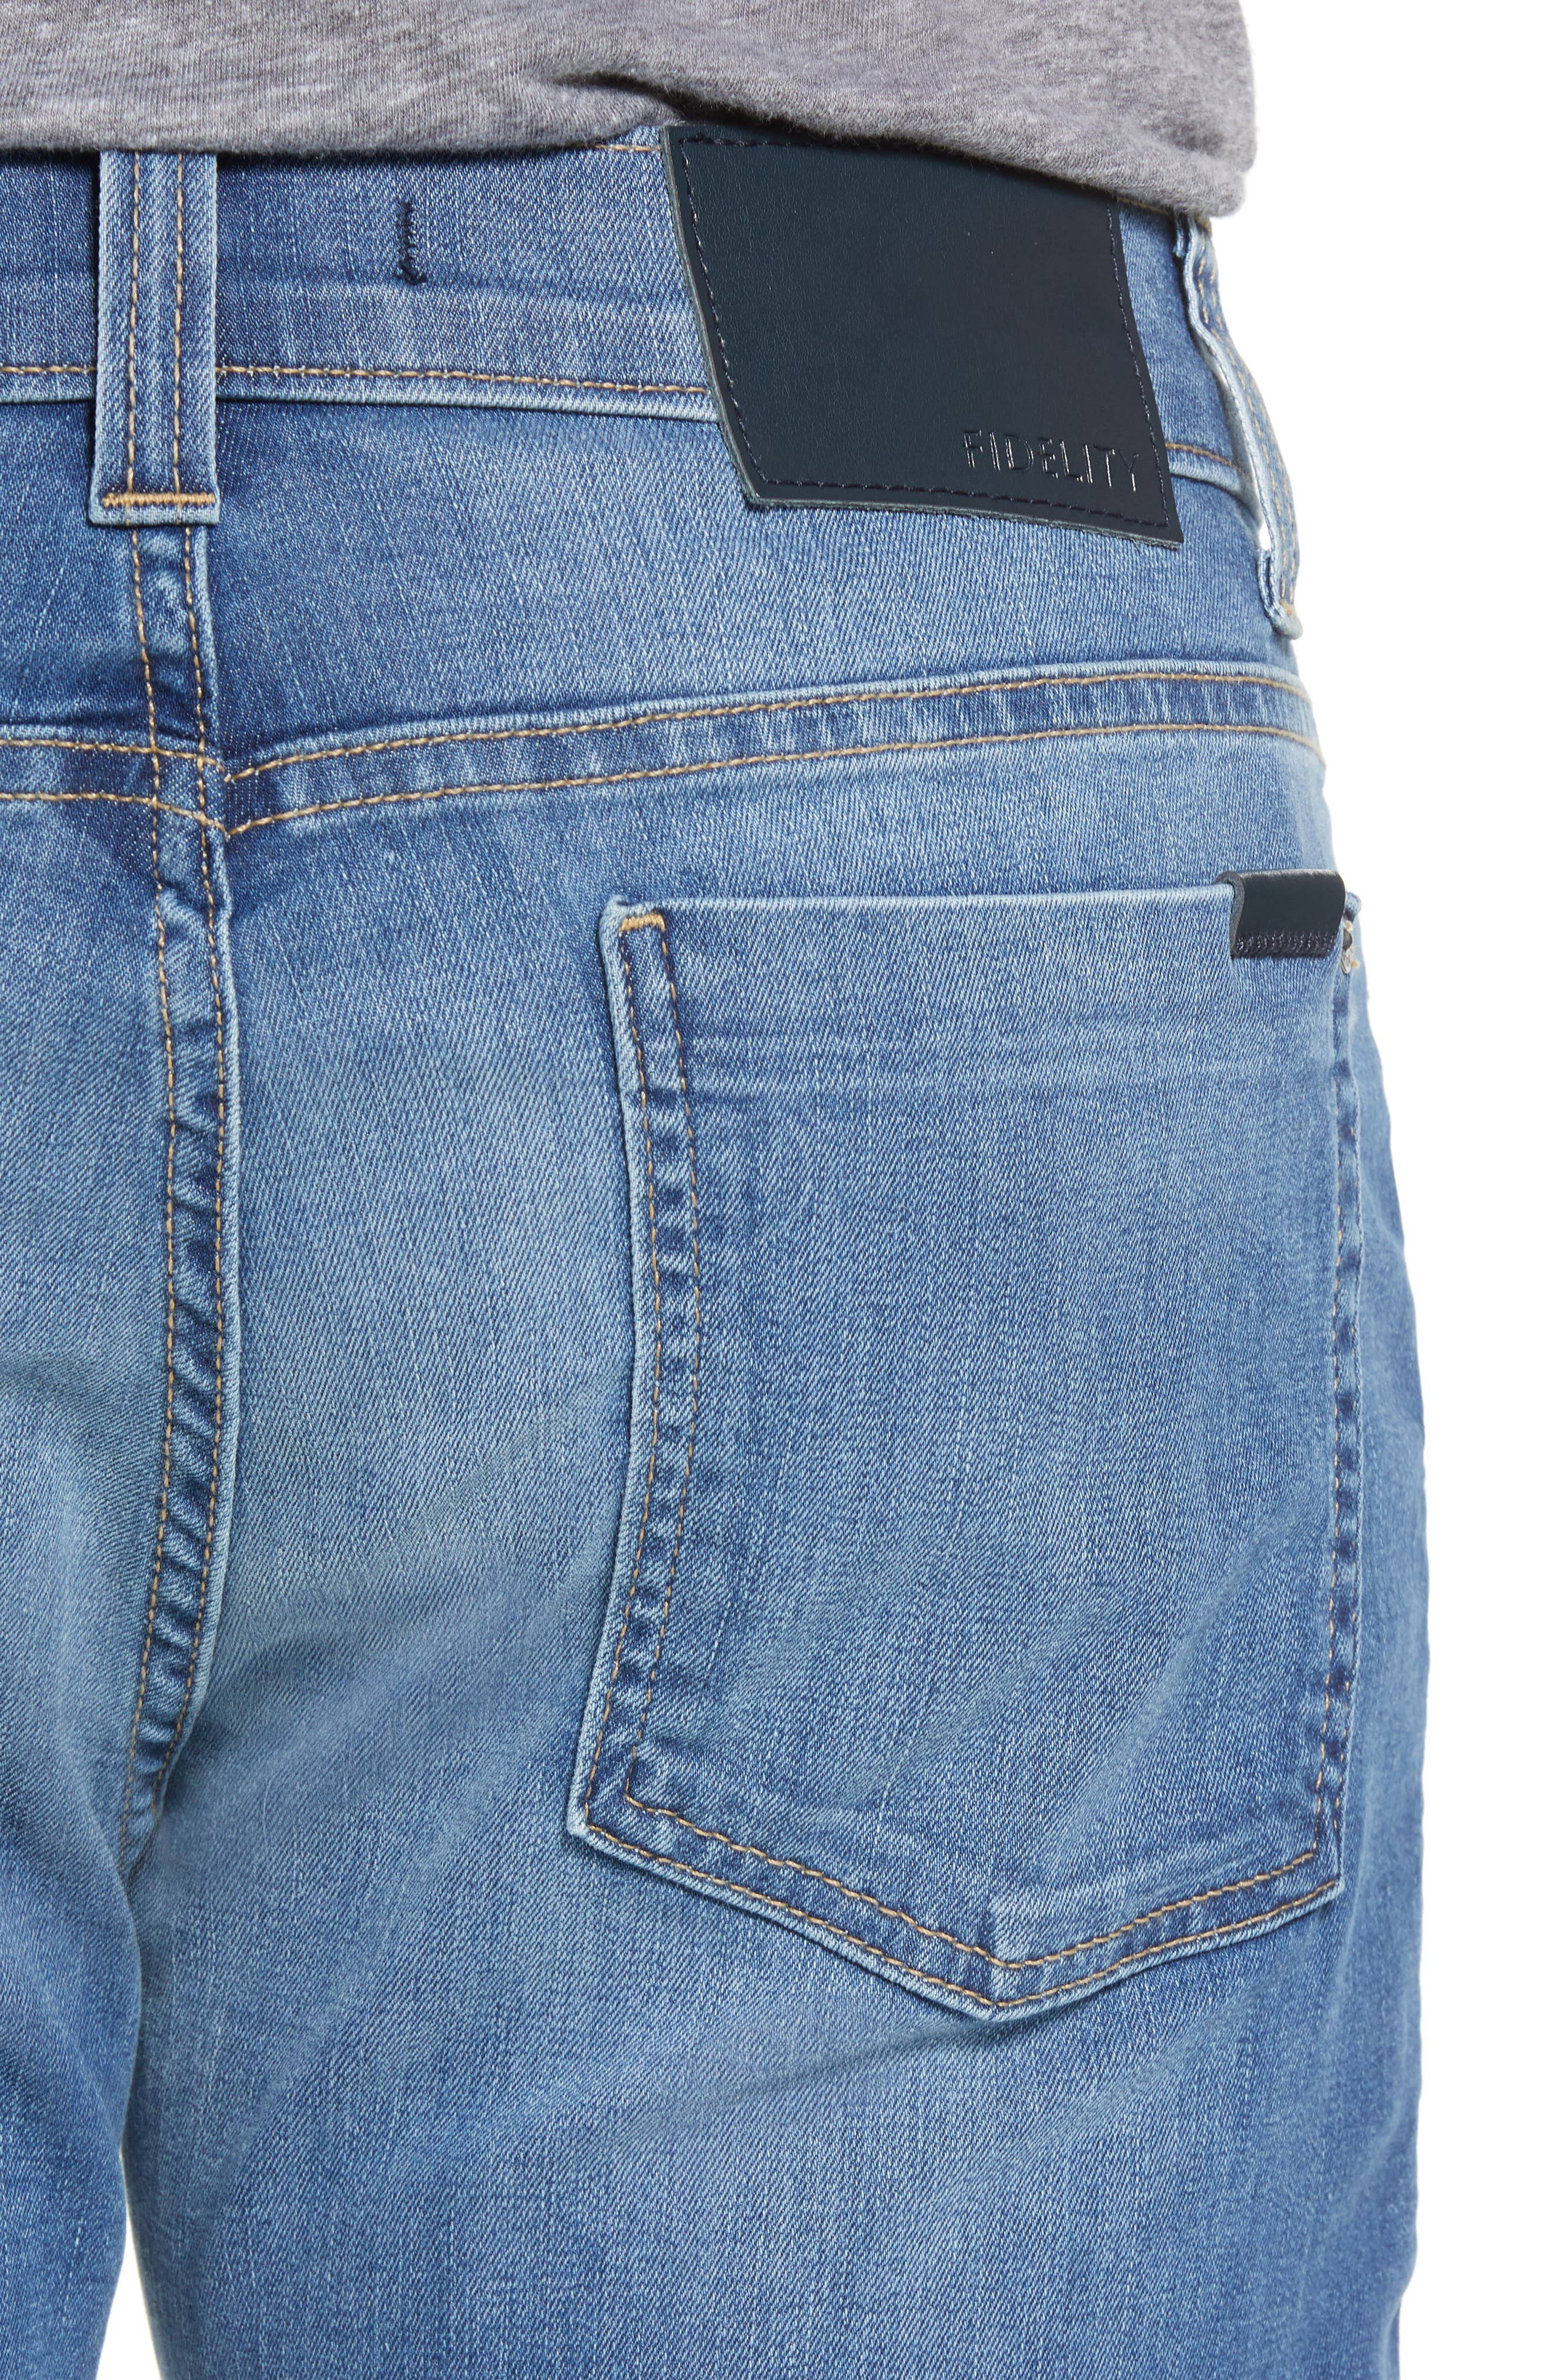 50-11 Relaxed Fit Jeans,                             Alternate thumbnail 4, color,                             Elysium